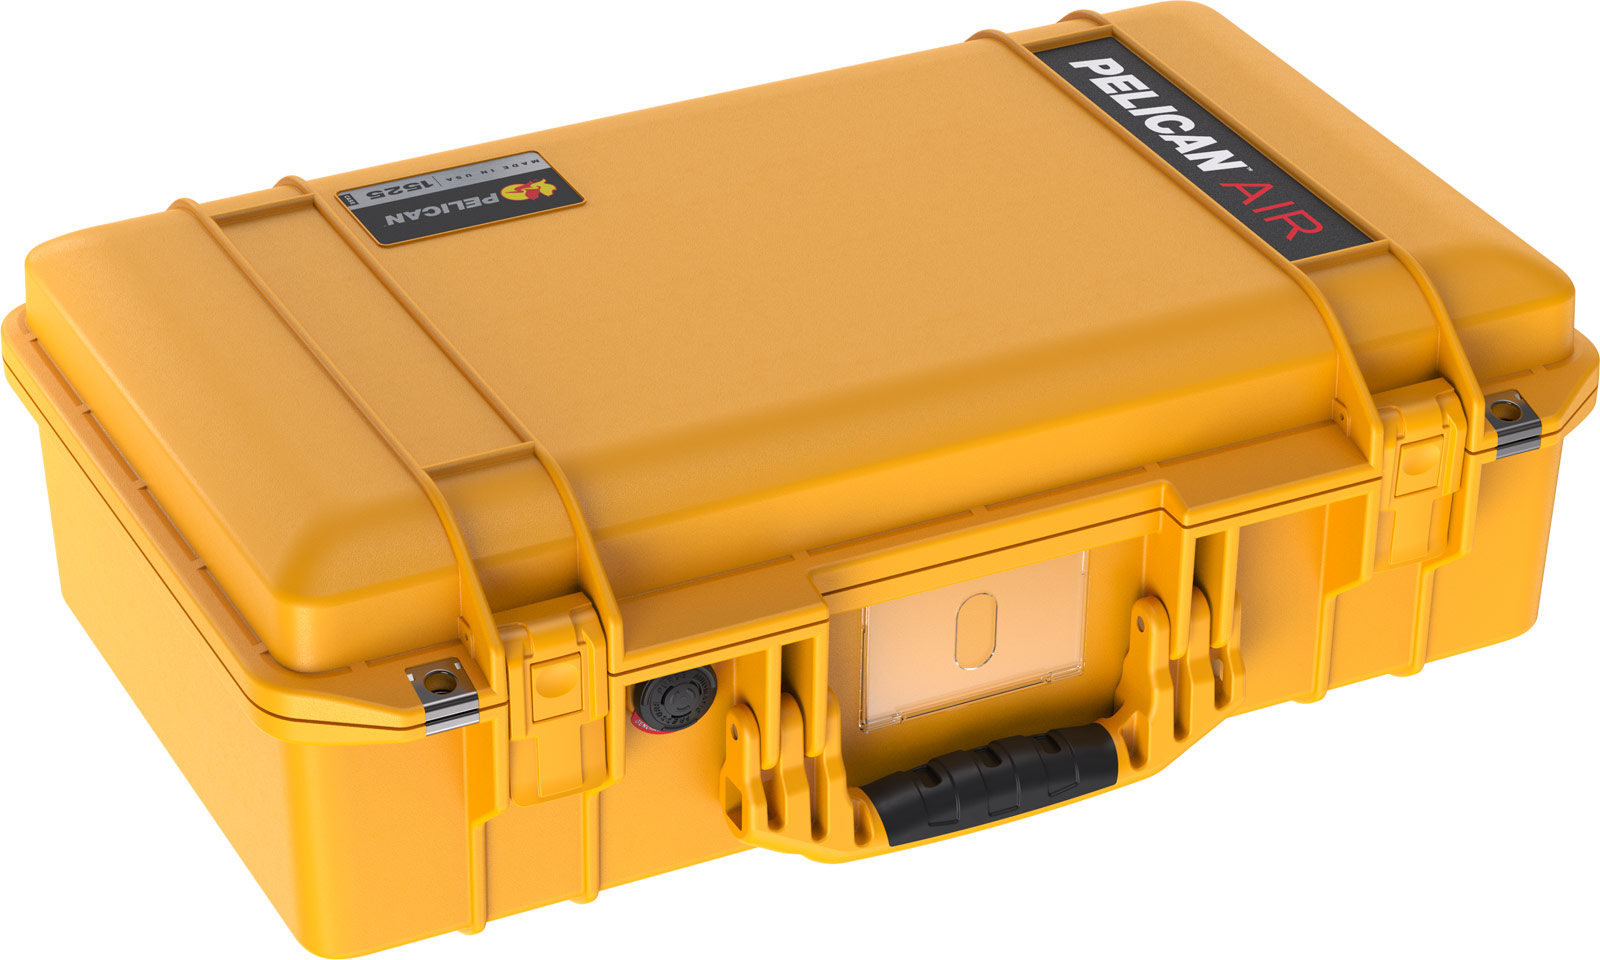 pelican yellow camera case air hard cases